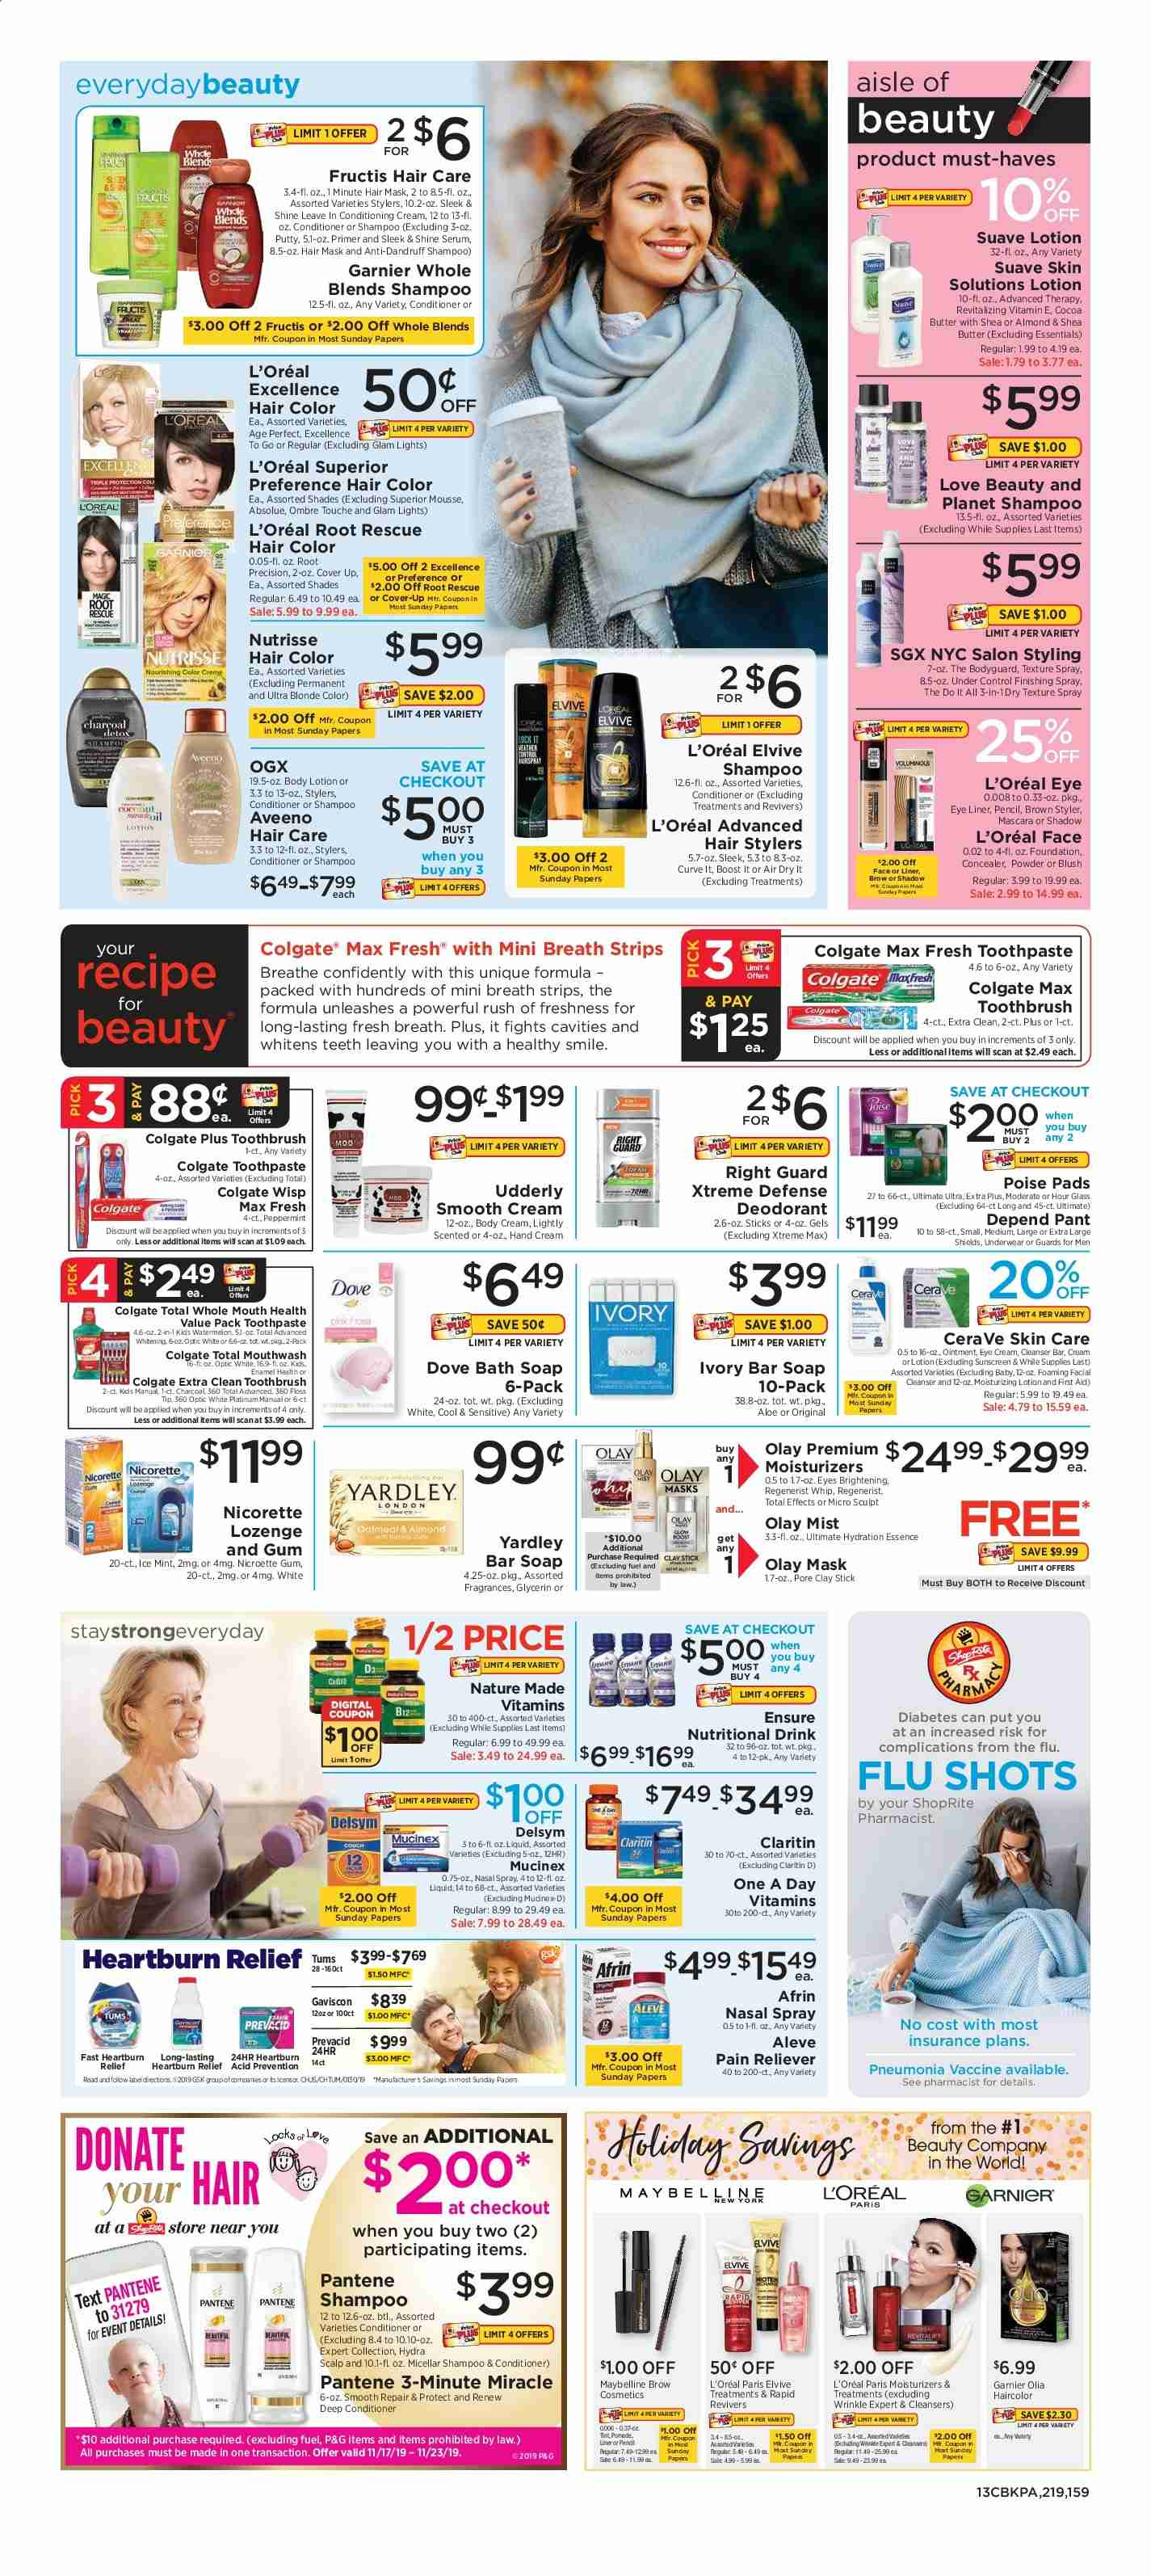 ShopRite Flyer - 11.17.2019 - 11.23.2019 - Sales products - afrin, aleve, aloe, aveeno, bath, body lotion, cerave, cleanser, cocoa, concealer, conditioner, delsym, deodorant, dove, colgate, eye liner, foundation, fuel, garnier, guards, l'oréal, mascara, mask, maybelline, mint, moisturizer, moisturizing, mucinex, nature made, nicorette, repair, serum, shades, shampoo, shea butter, spray, stick, suave, tint, toothbrush, underwear, watermelon, hand cream, powder, charcoal, pantene, ointment, olay, pads, toothpaste, hair color, acid, smooth, cosmetics, gum, mouthwash, drink, liquid, breath, smile, cream. Page 12.